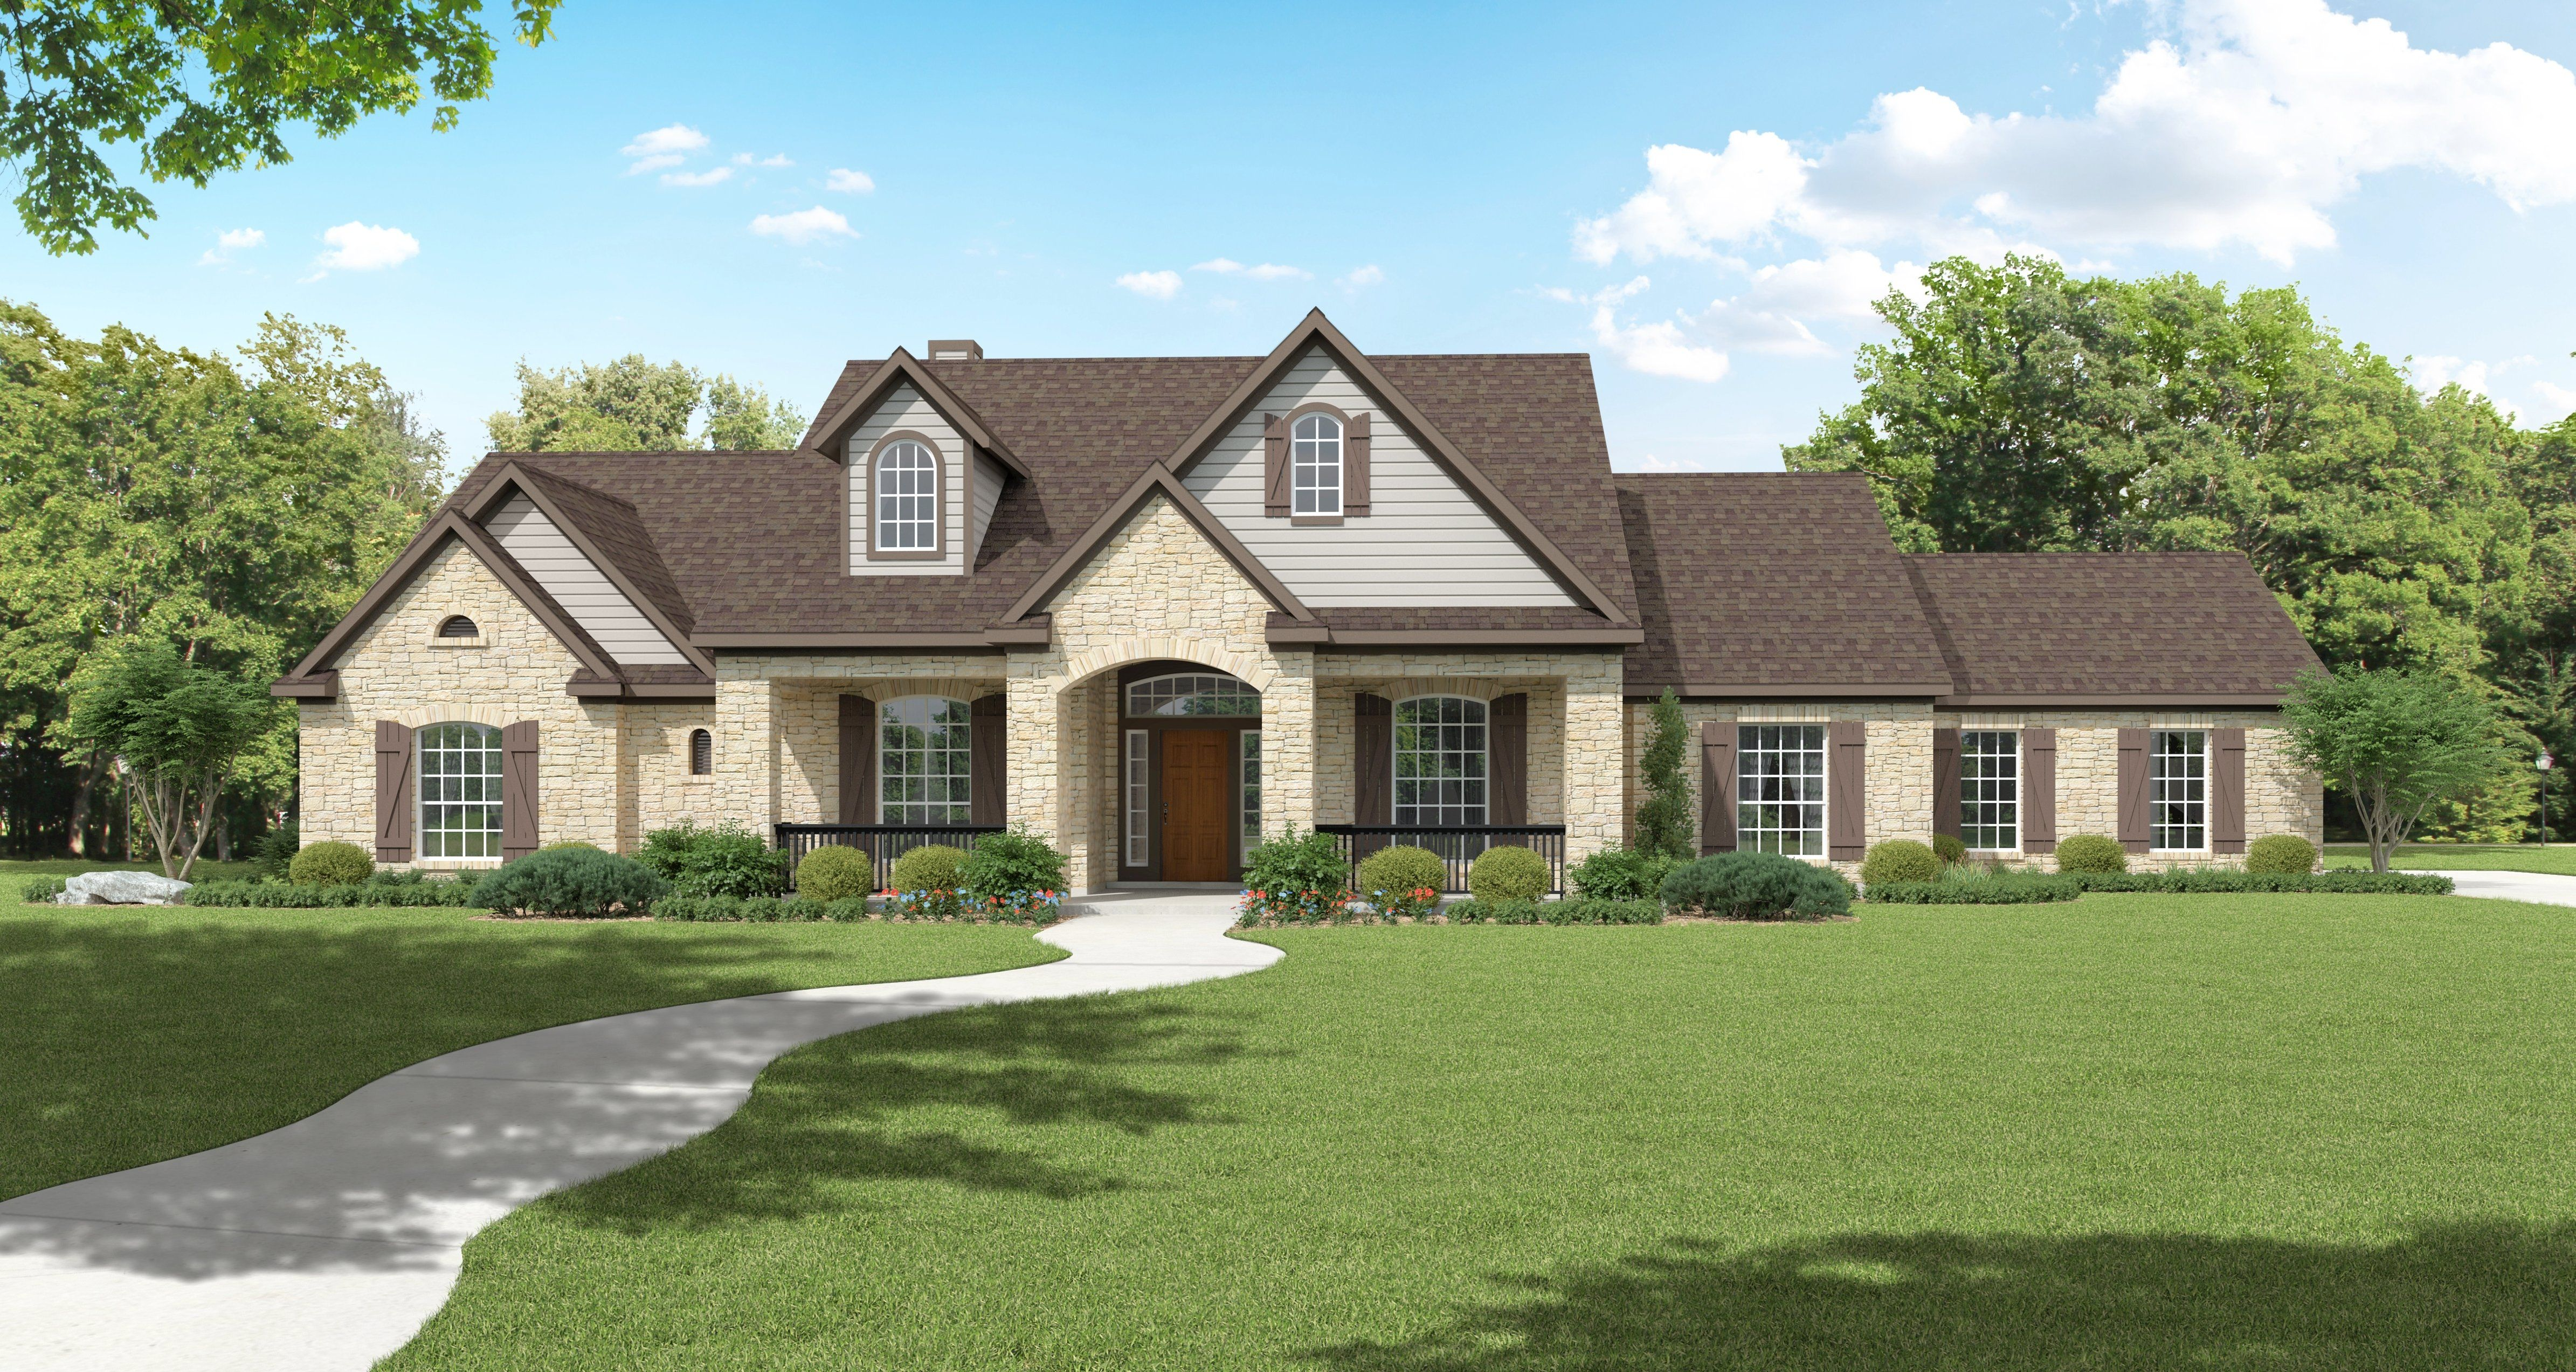 The carrington 2000 plus sq ft house plans design tech 2000 sq ft house images